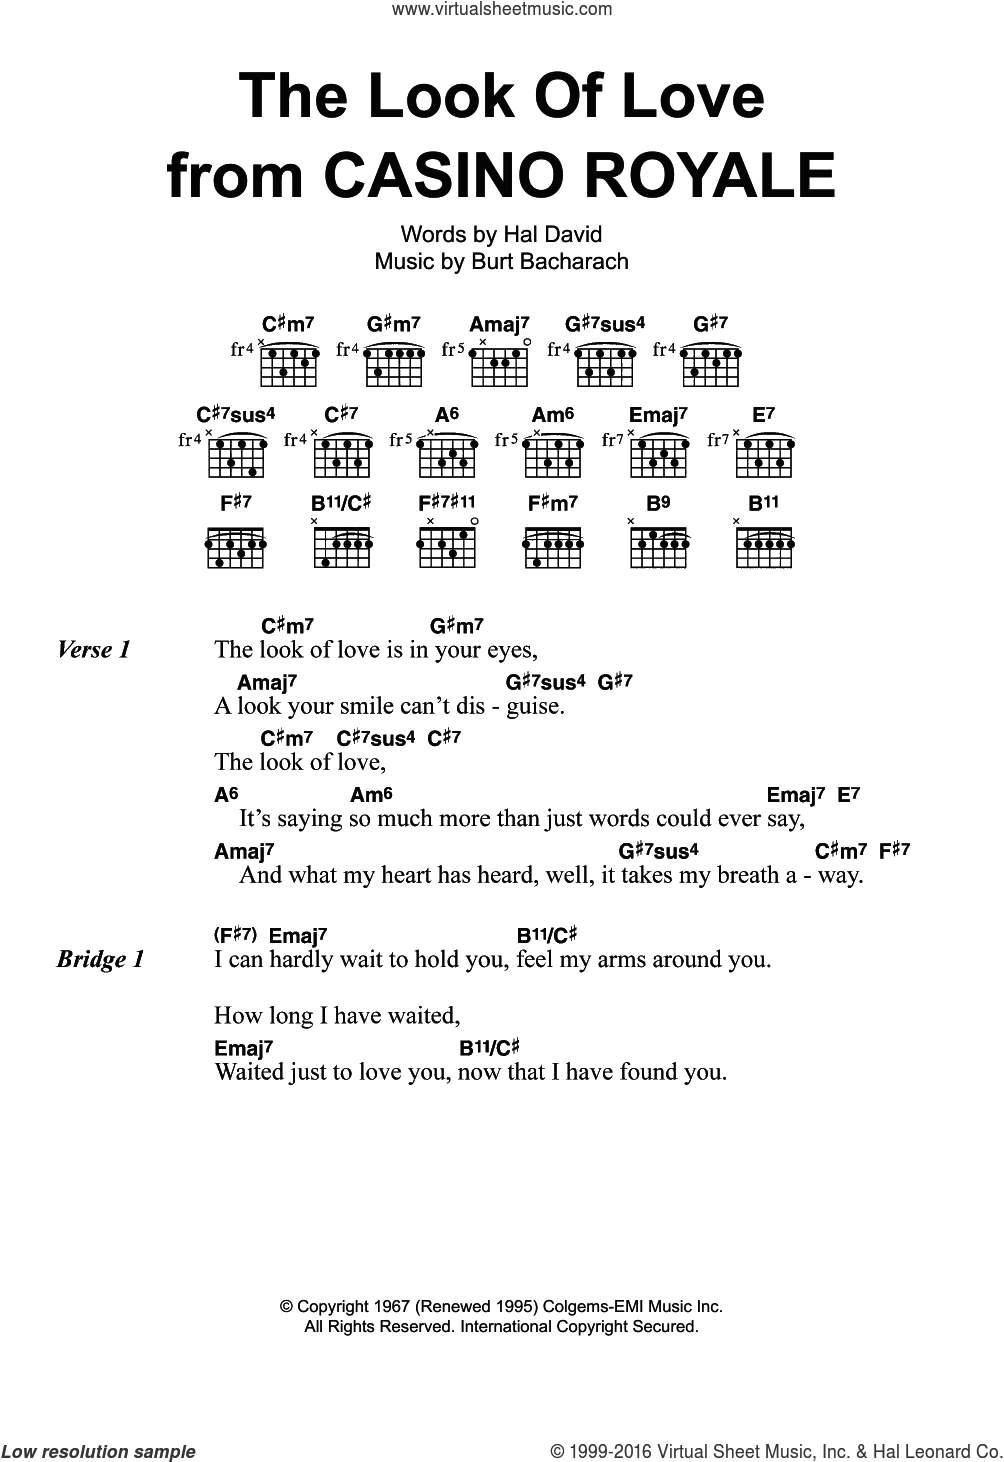 The Look Of Love sheet music for guitar (chords) by Dusty Springfield, Diana Krall, Burt Bacharach and Hal David, intermediate skill level